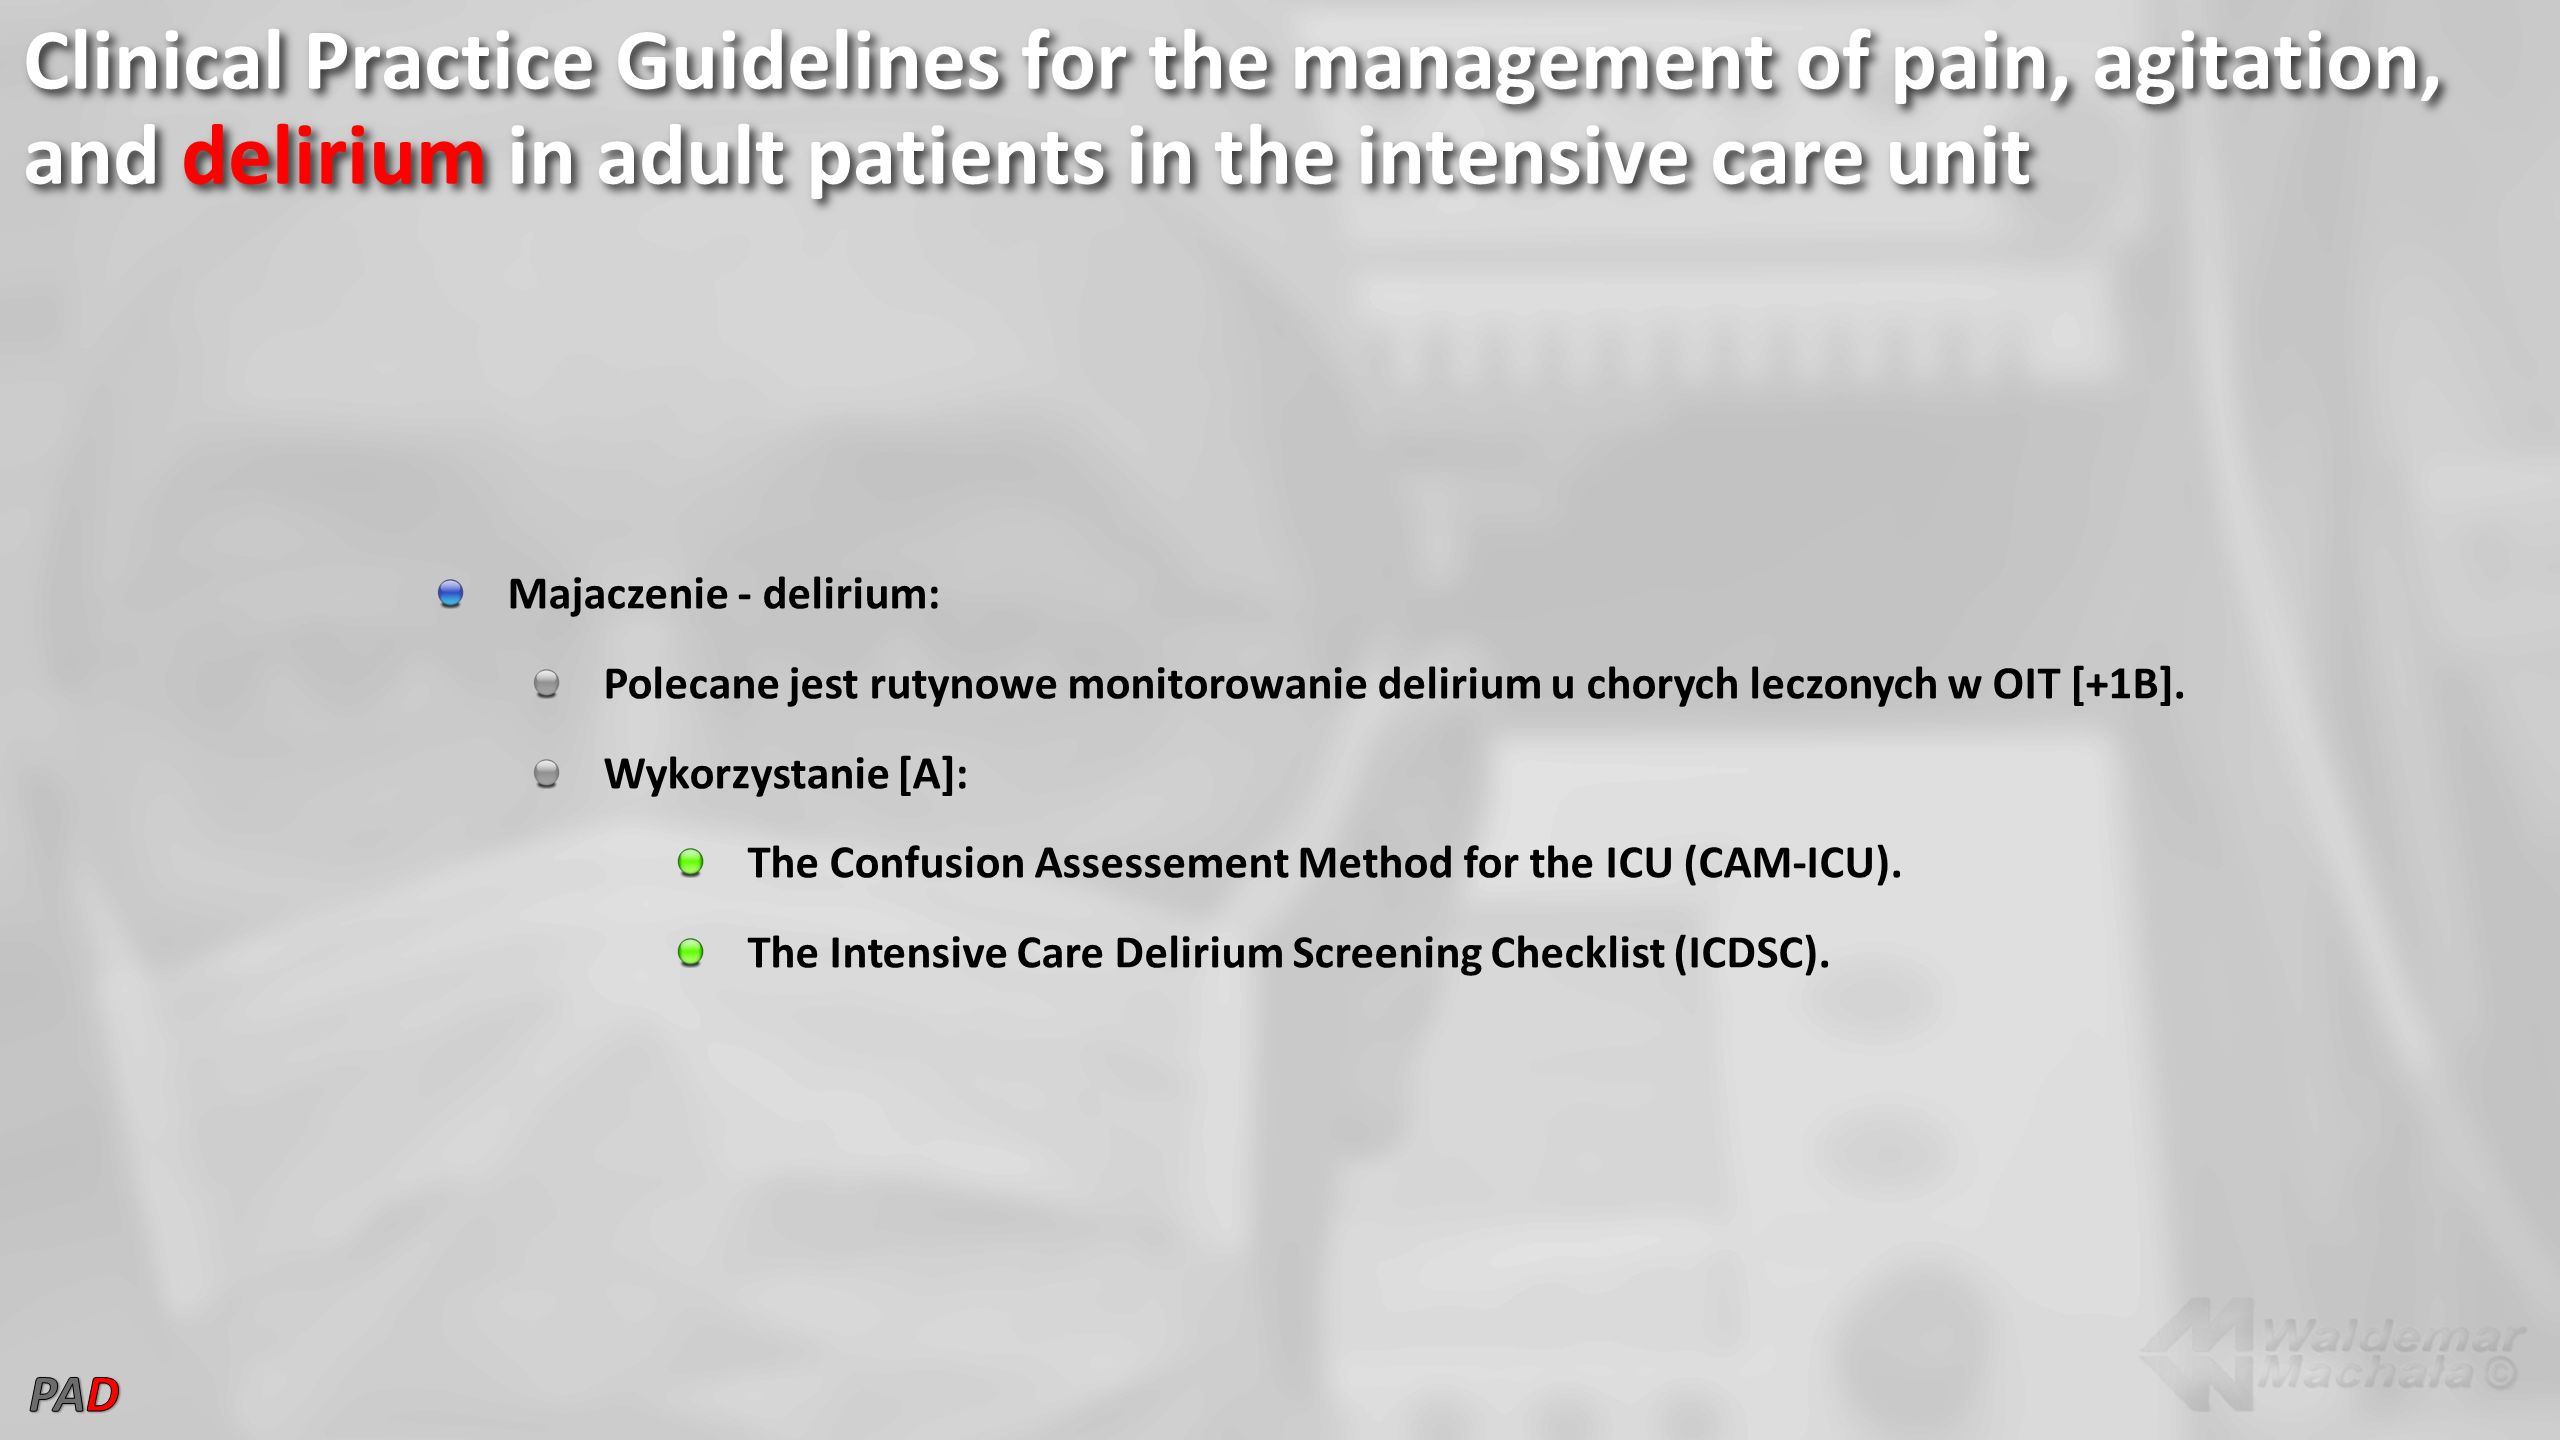 Clinical Practice Guidelines for the management of pain, agitation, and delirium in adult patients in the intensive care unit Majaczenie - delirium: P